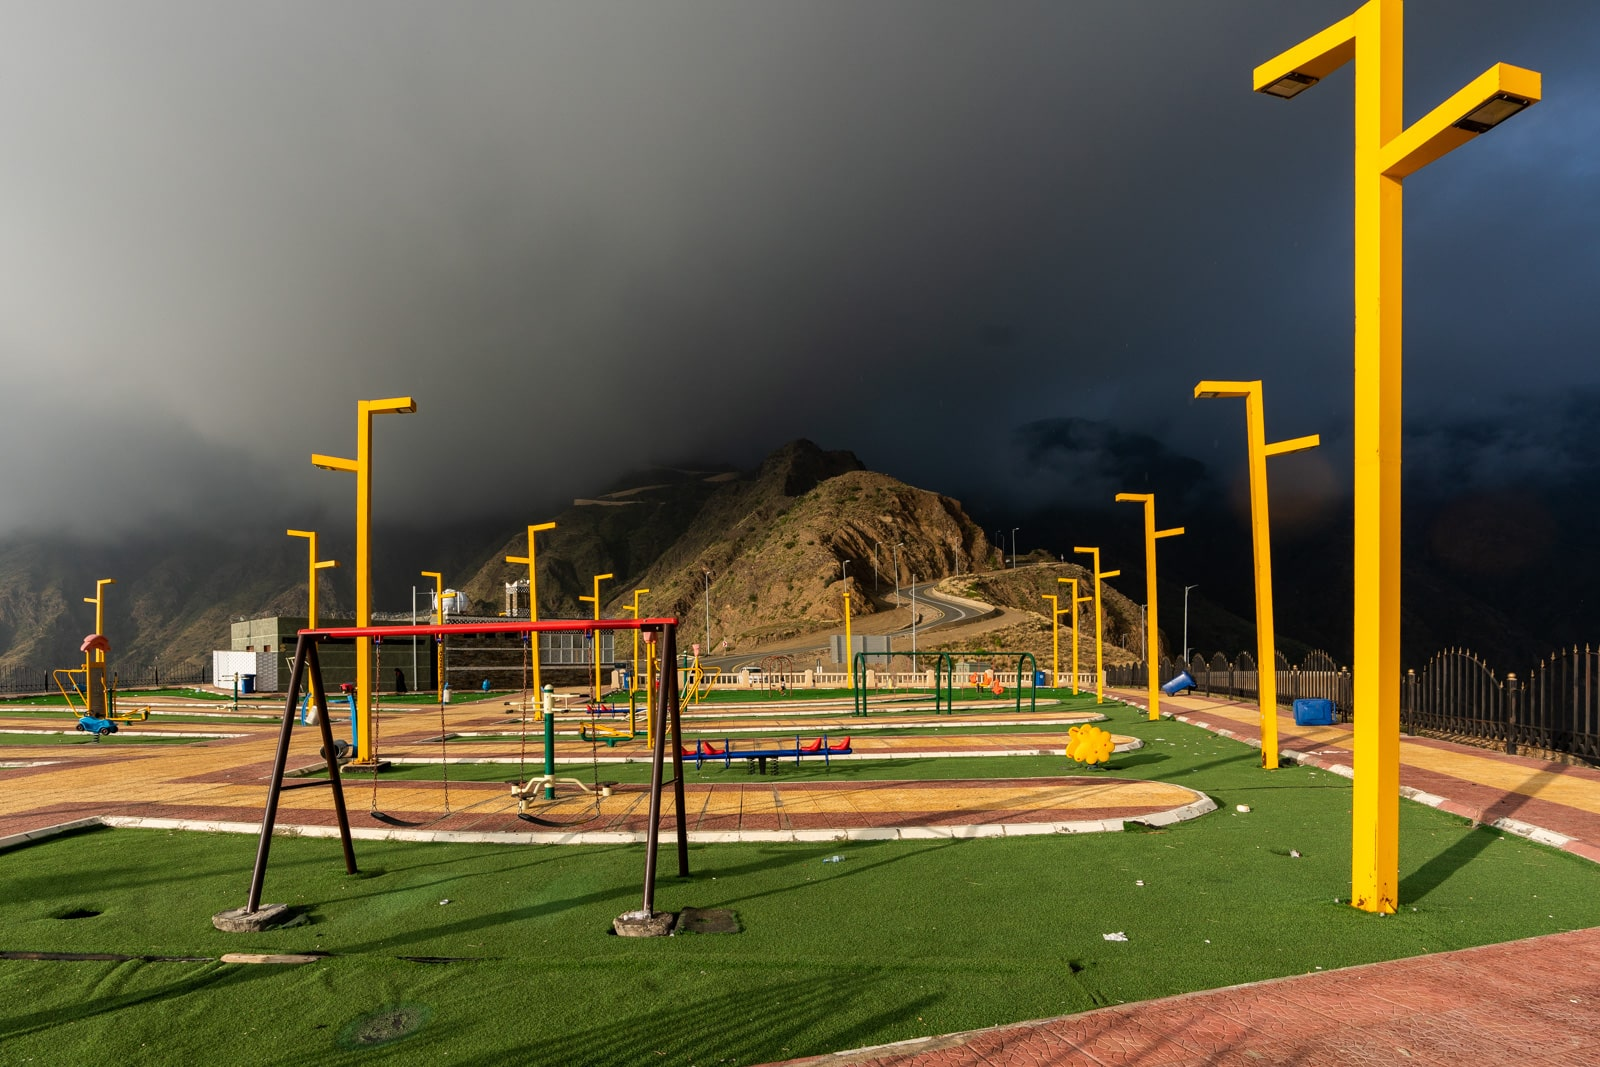 Apocalyptic playground on a mountain top in Asir province, Saudi Arabia